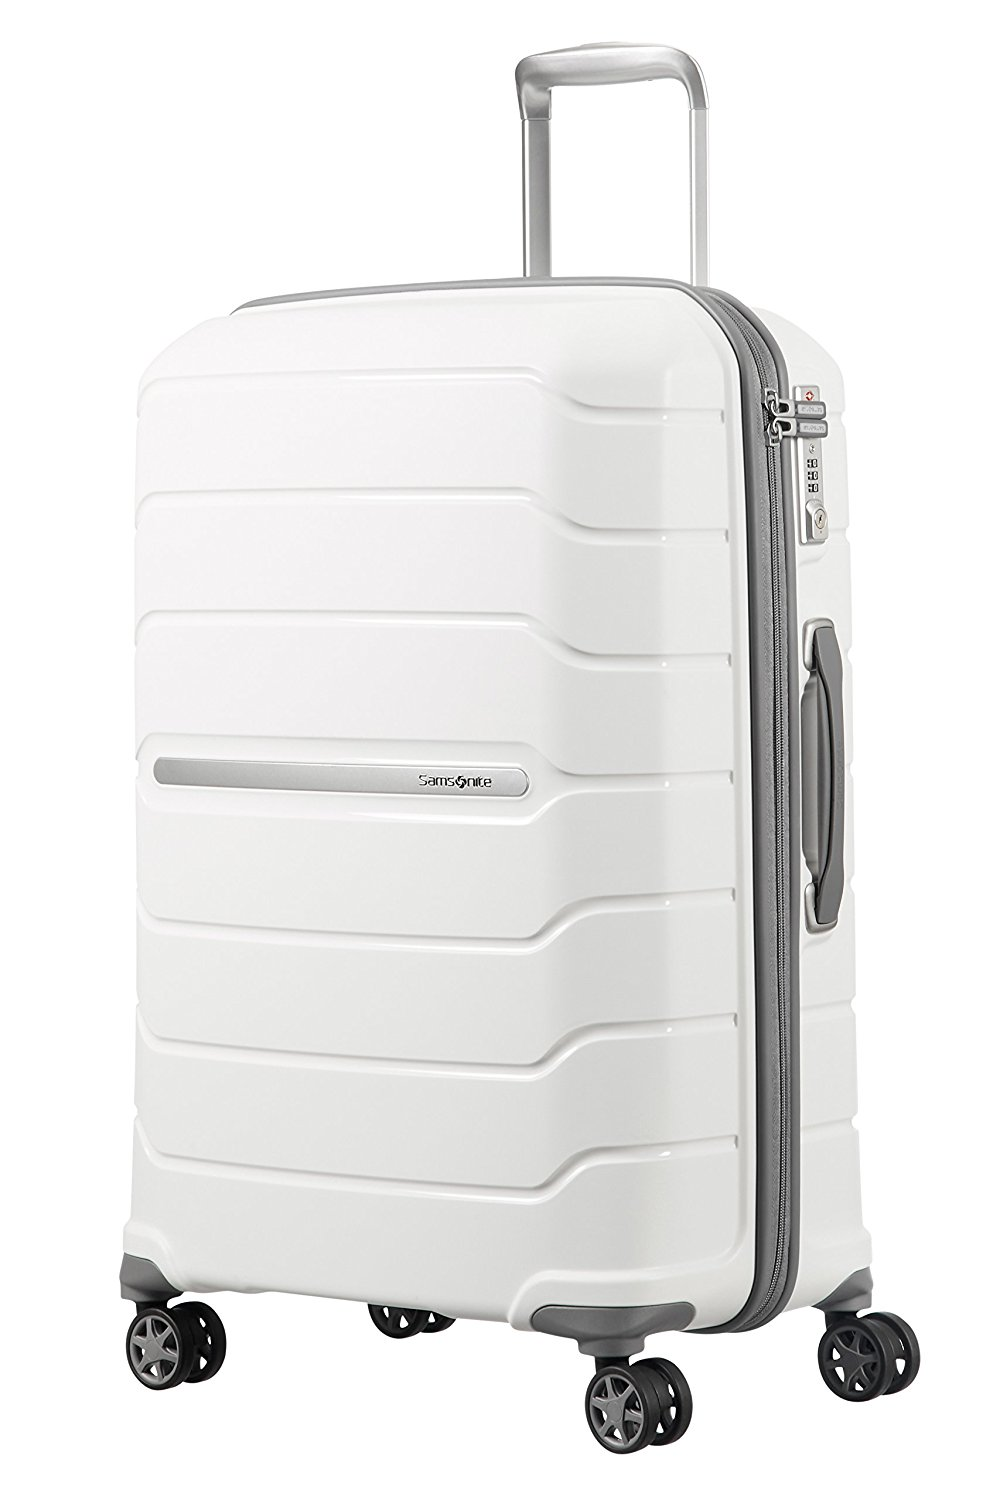 SAMSONITE Flux - Spinner 68/25 Expandable Bagage cabine, 68 cm, 95 liters, Weiß